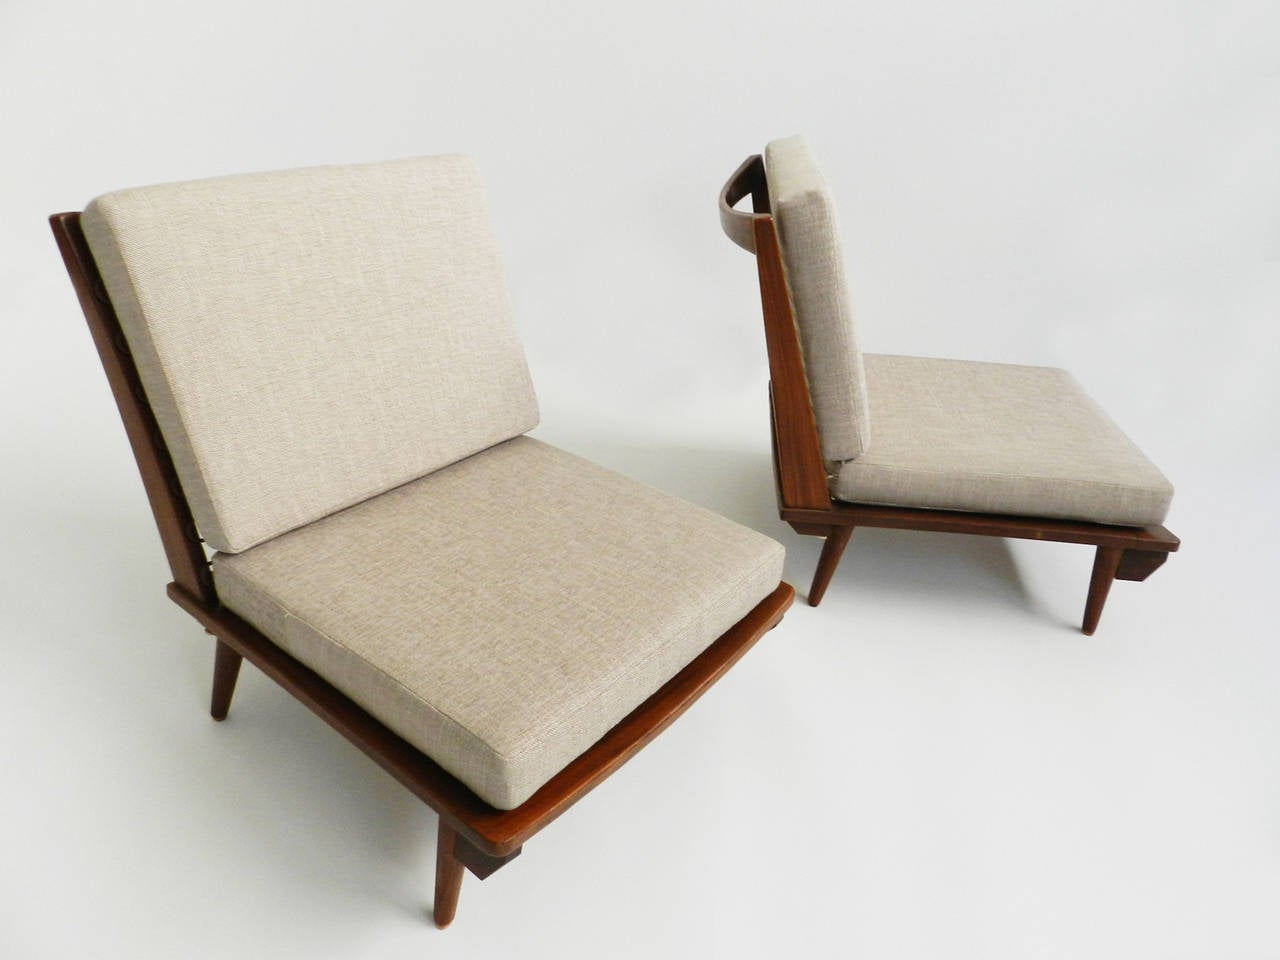 Japanese Chair Minimal Low Lounge Chairs In Japanese Style At 1stdibs